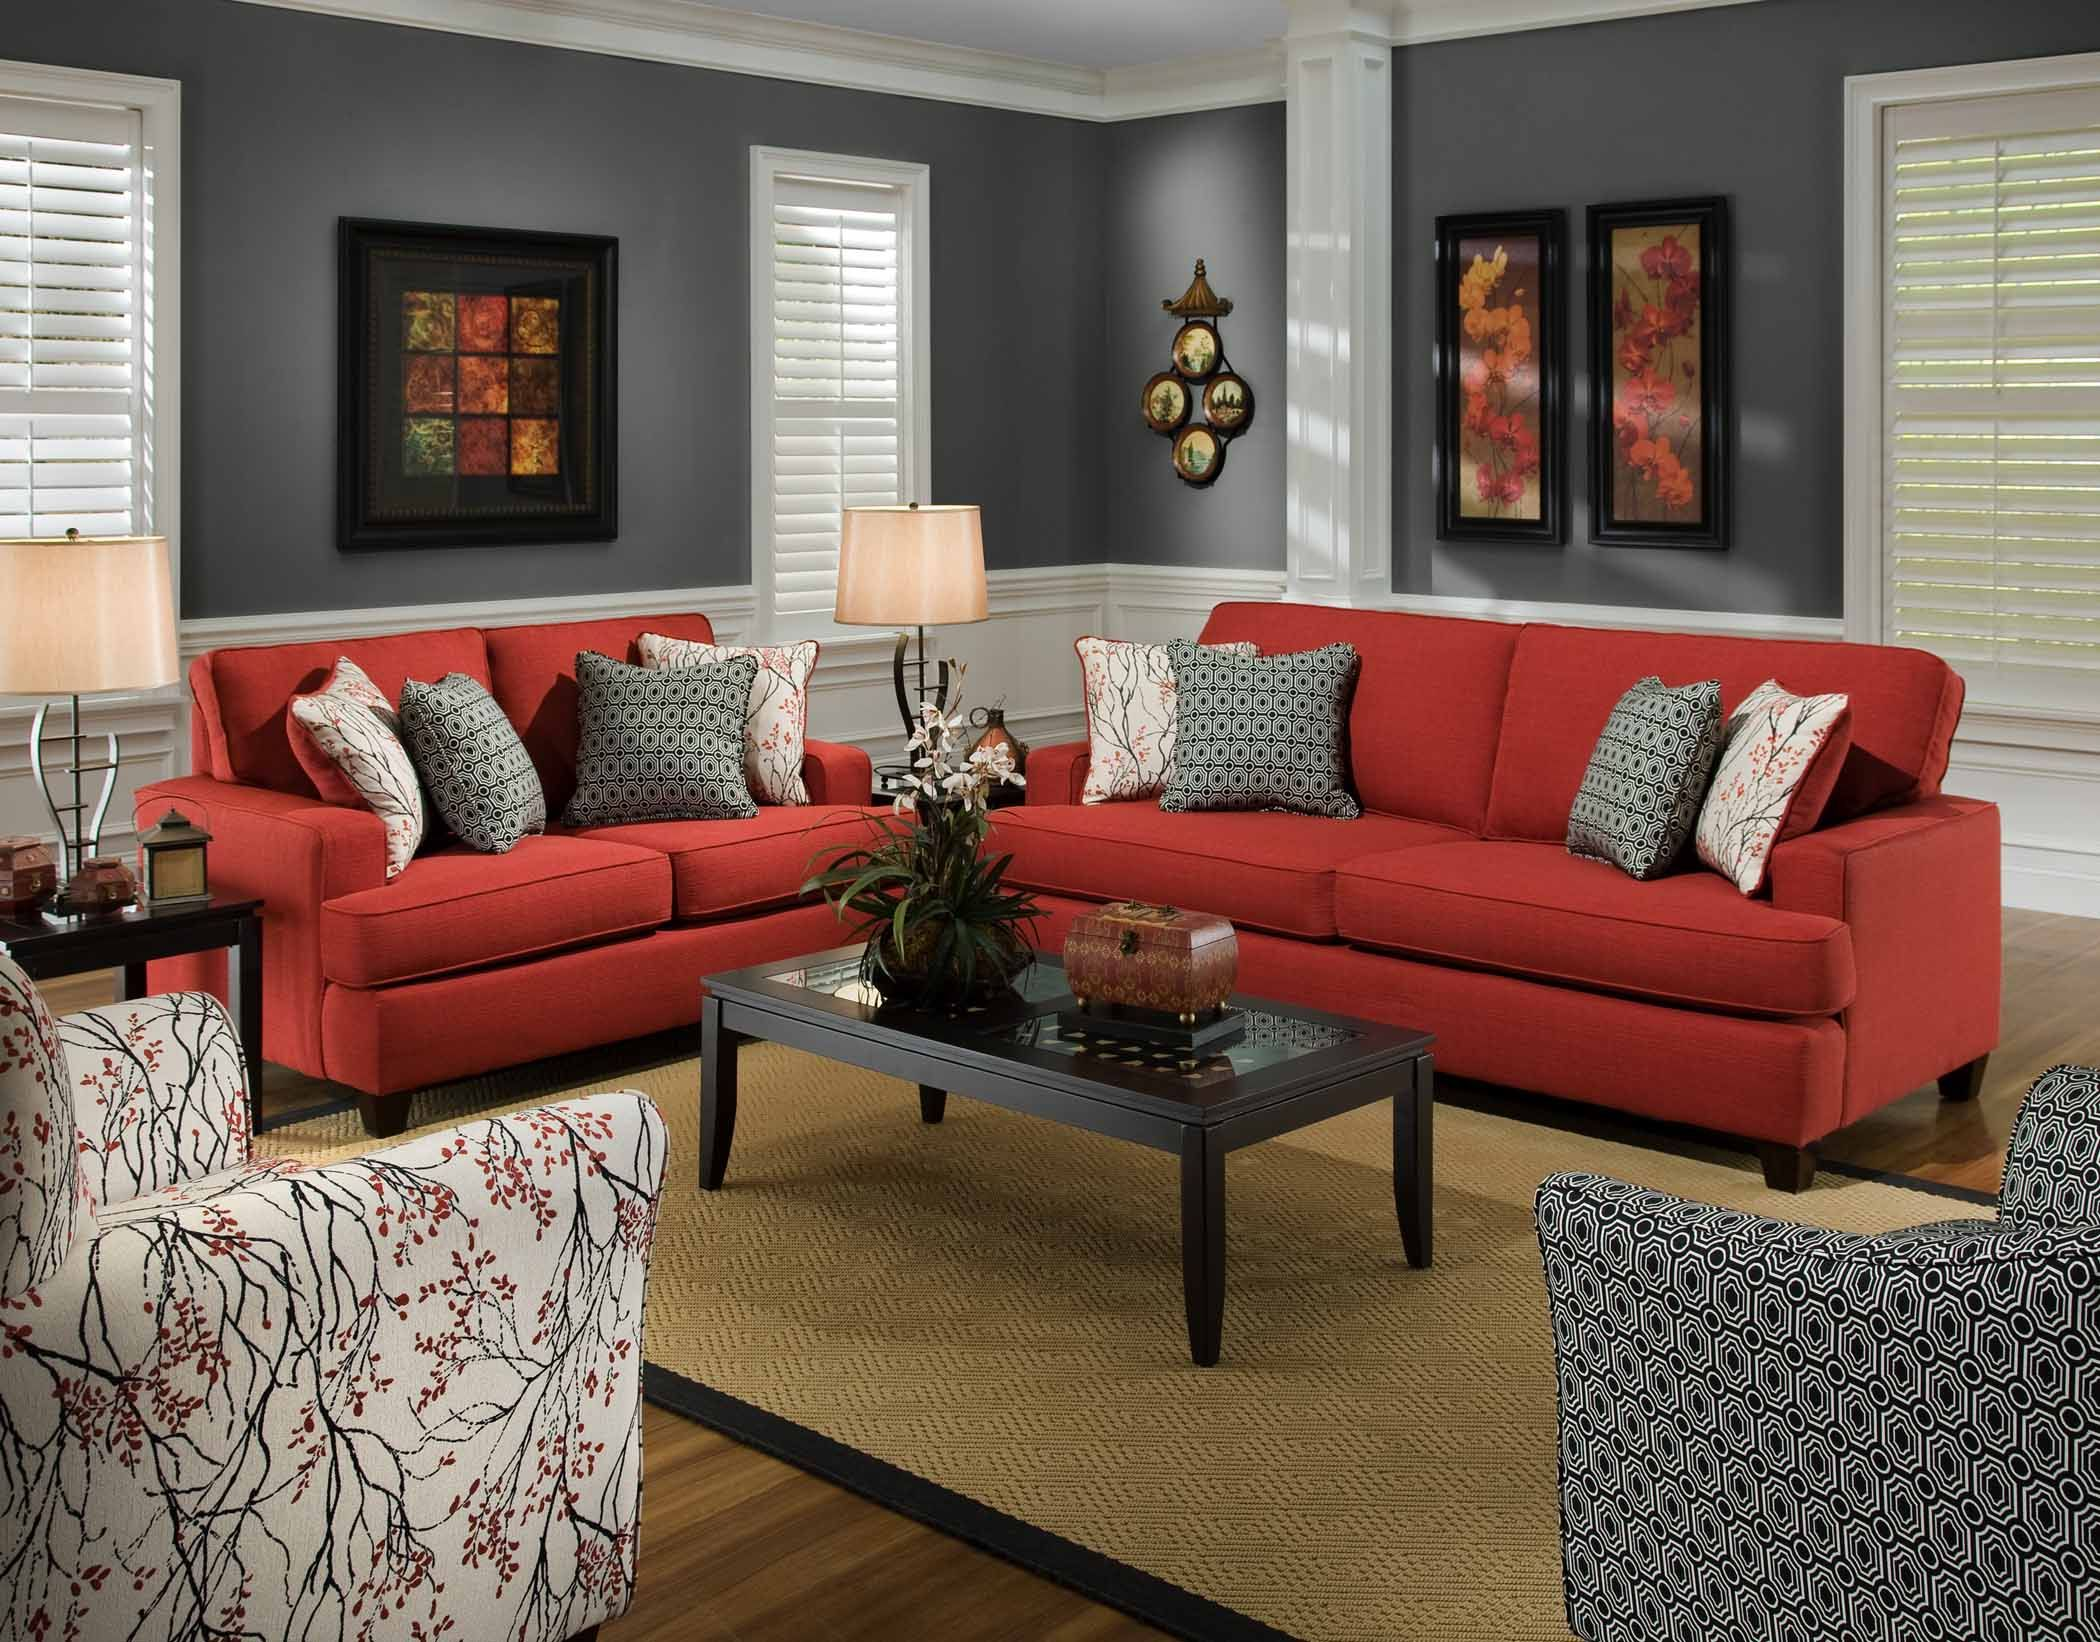 Want The Cherry Blossom Chair Loveseat Now Red Sofa Living Room Red Couch Living Room Living Room Red